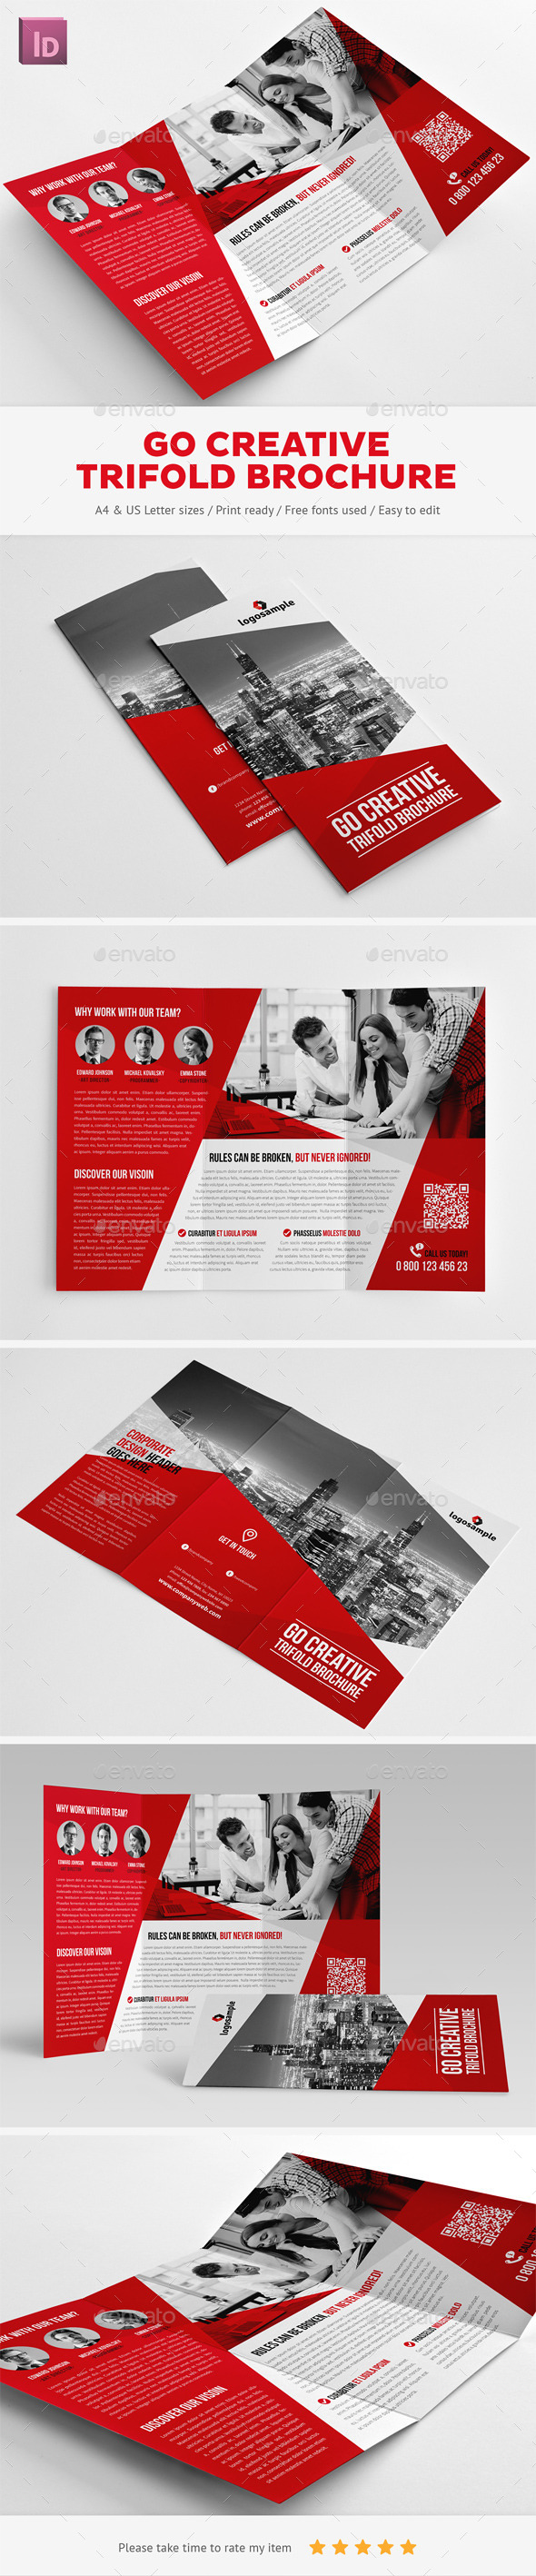 GraphicRiver Go Creative Trifold Brochure 11477894